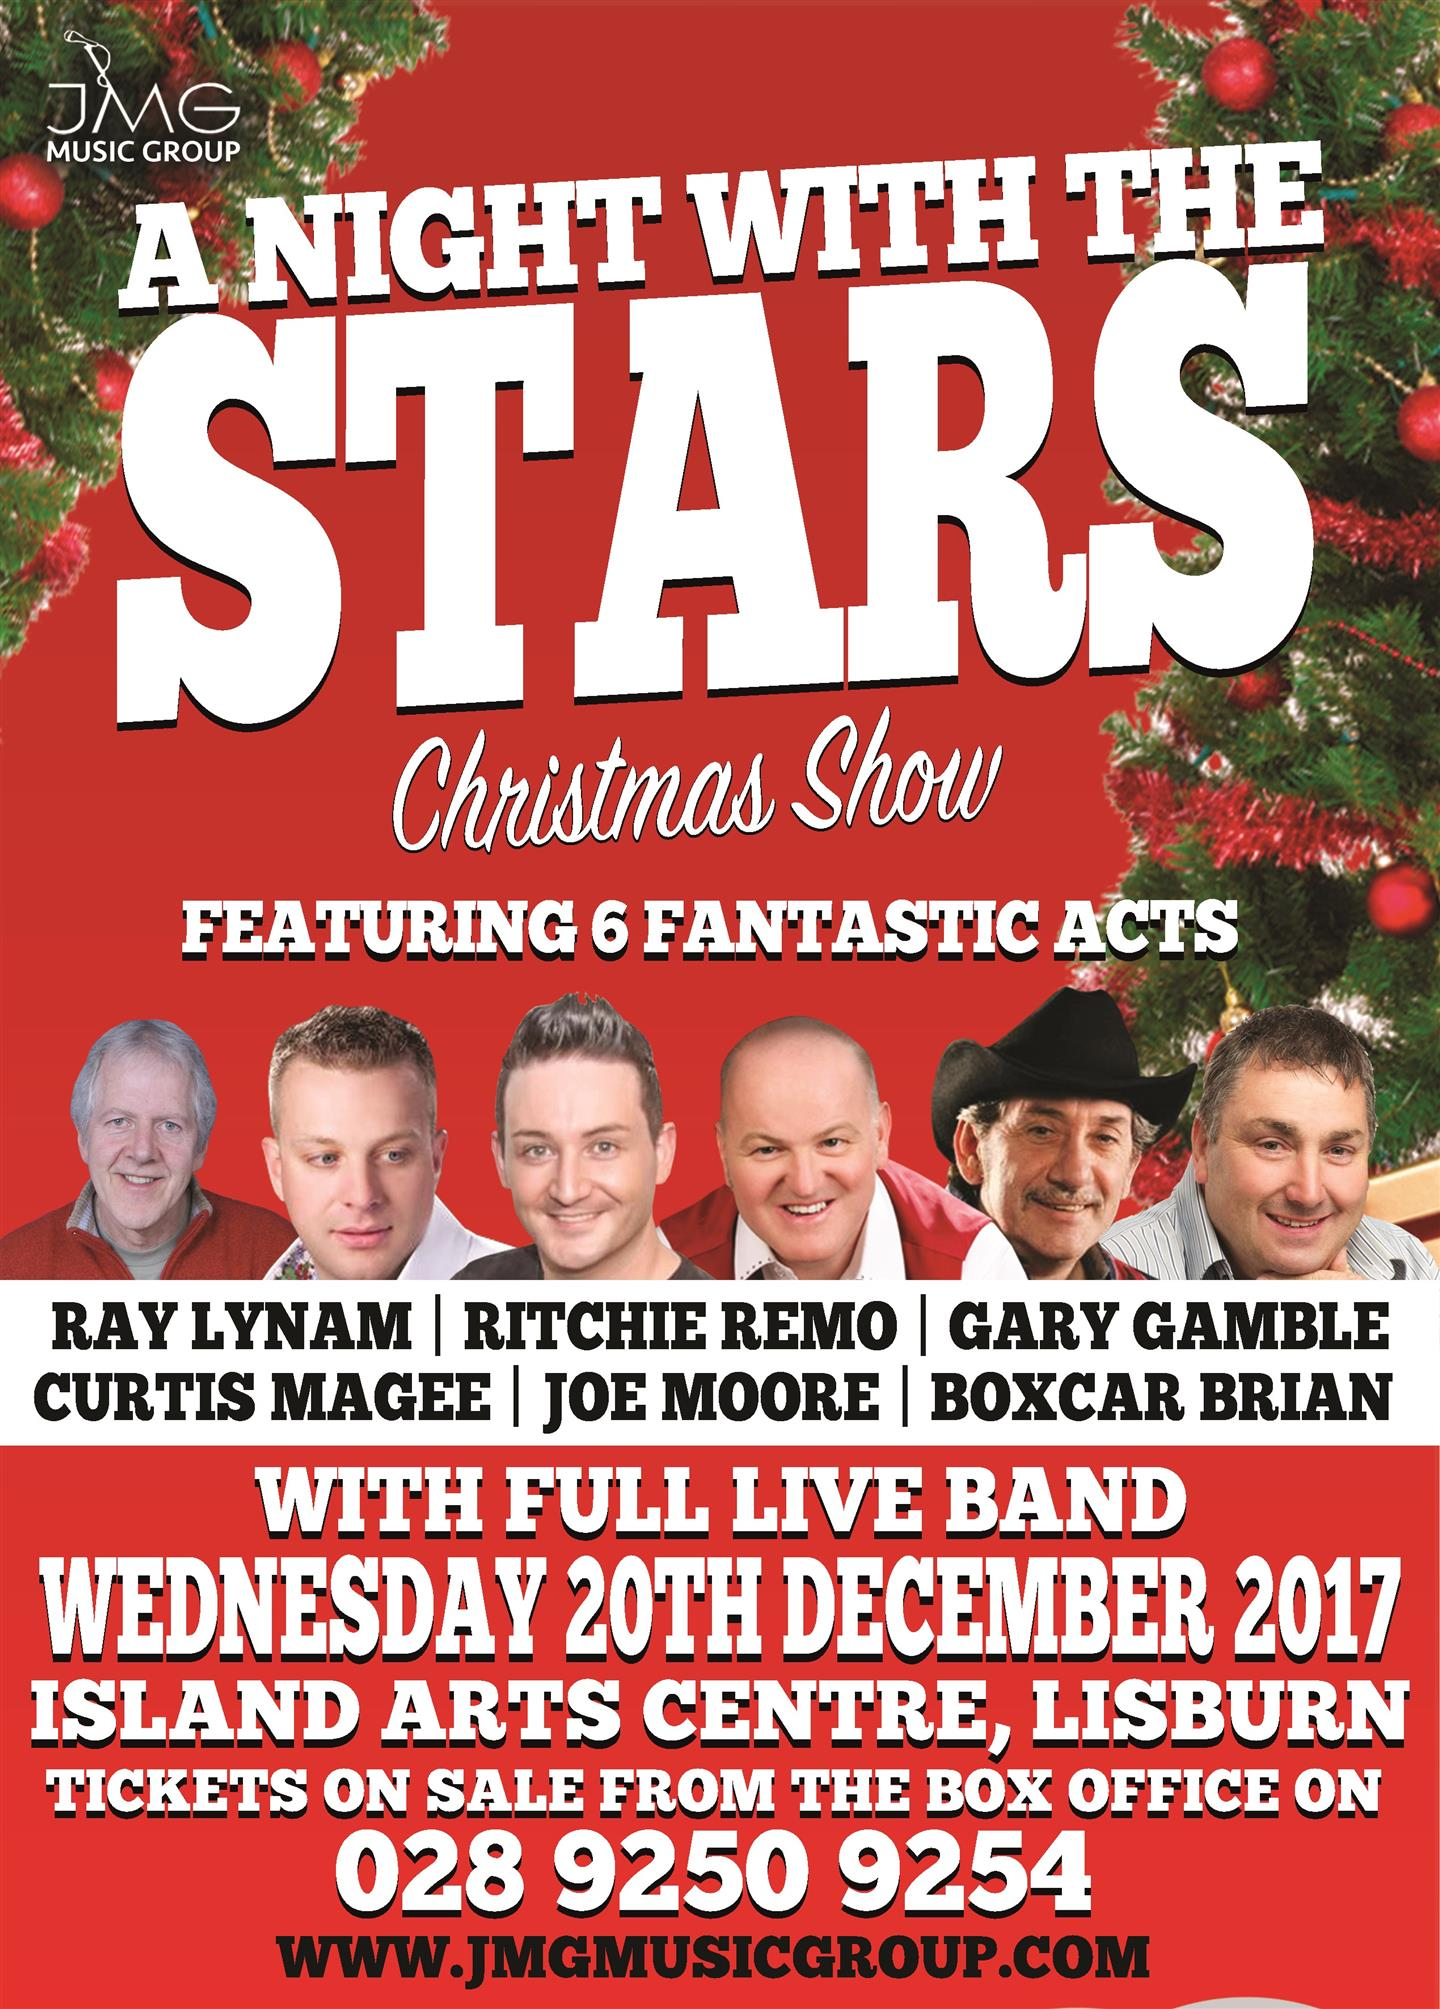 A Night with the Stars Christmas Show